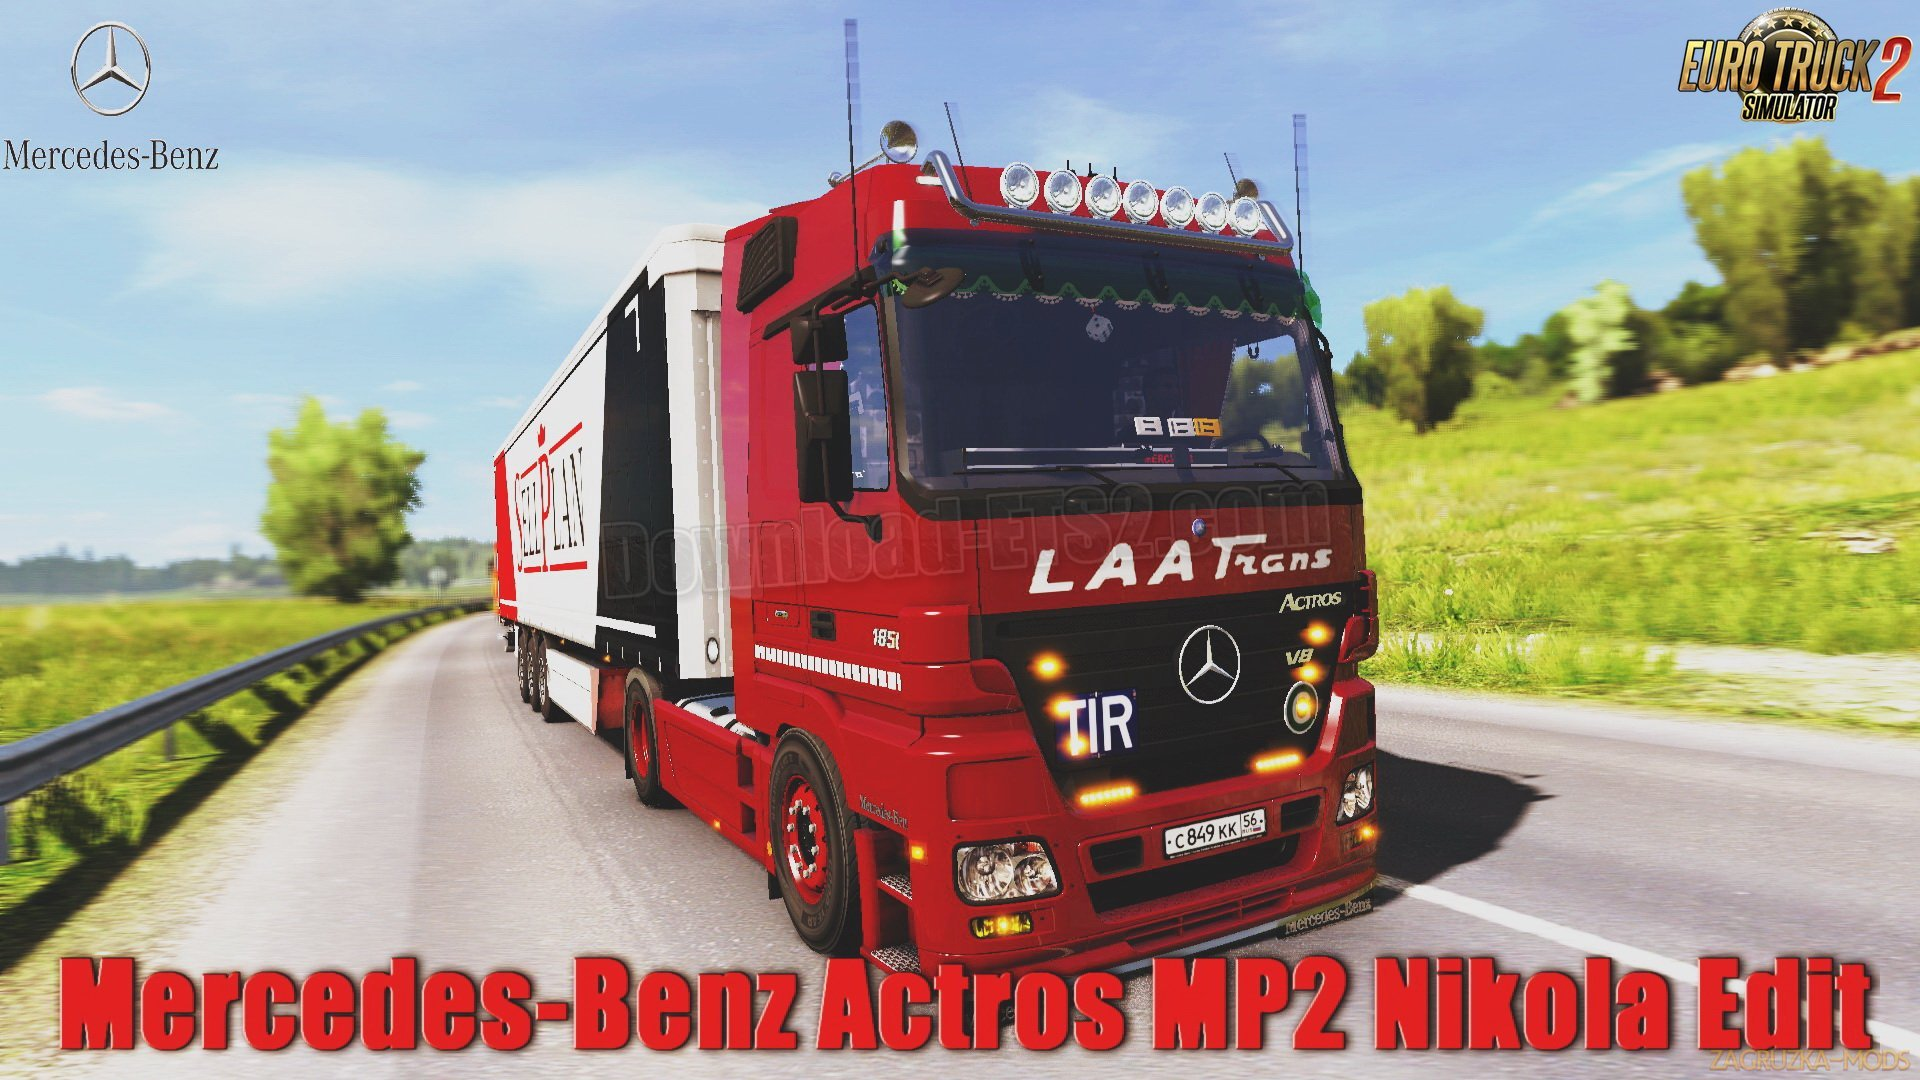 Mercedes-Benz Actros MP2 + Interior v8.0 Edit by Nikola (1.31.x) for ETS 2